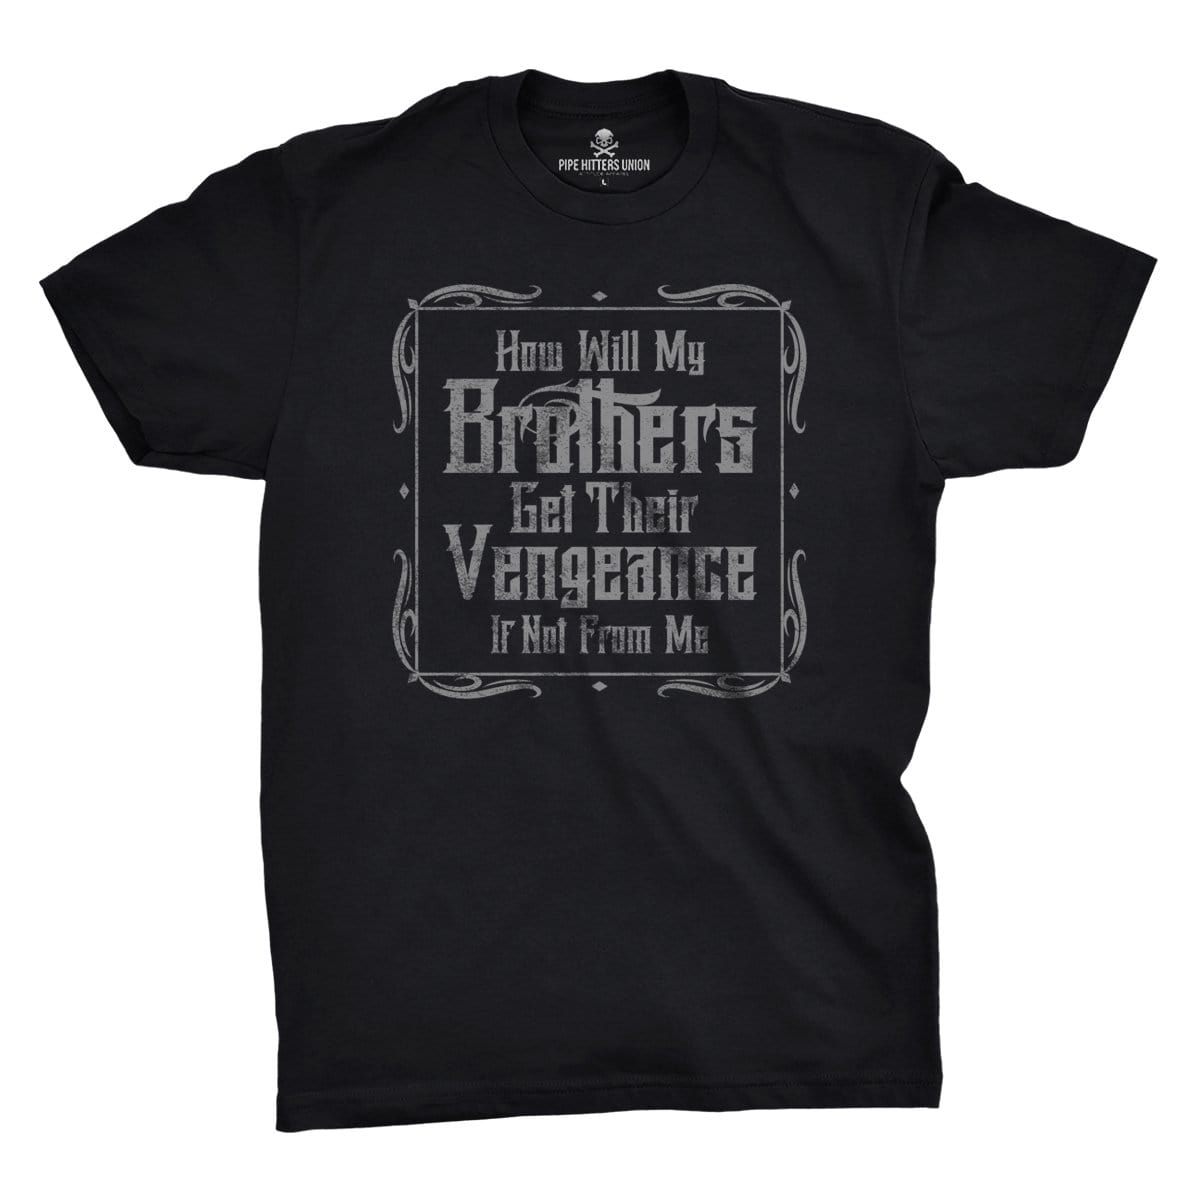 Brother's Vengeance - Black - T-Shirts - Pipe Hitters Union